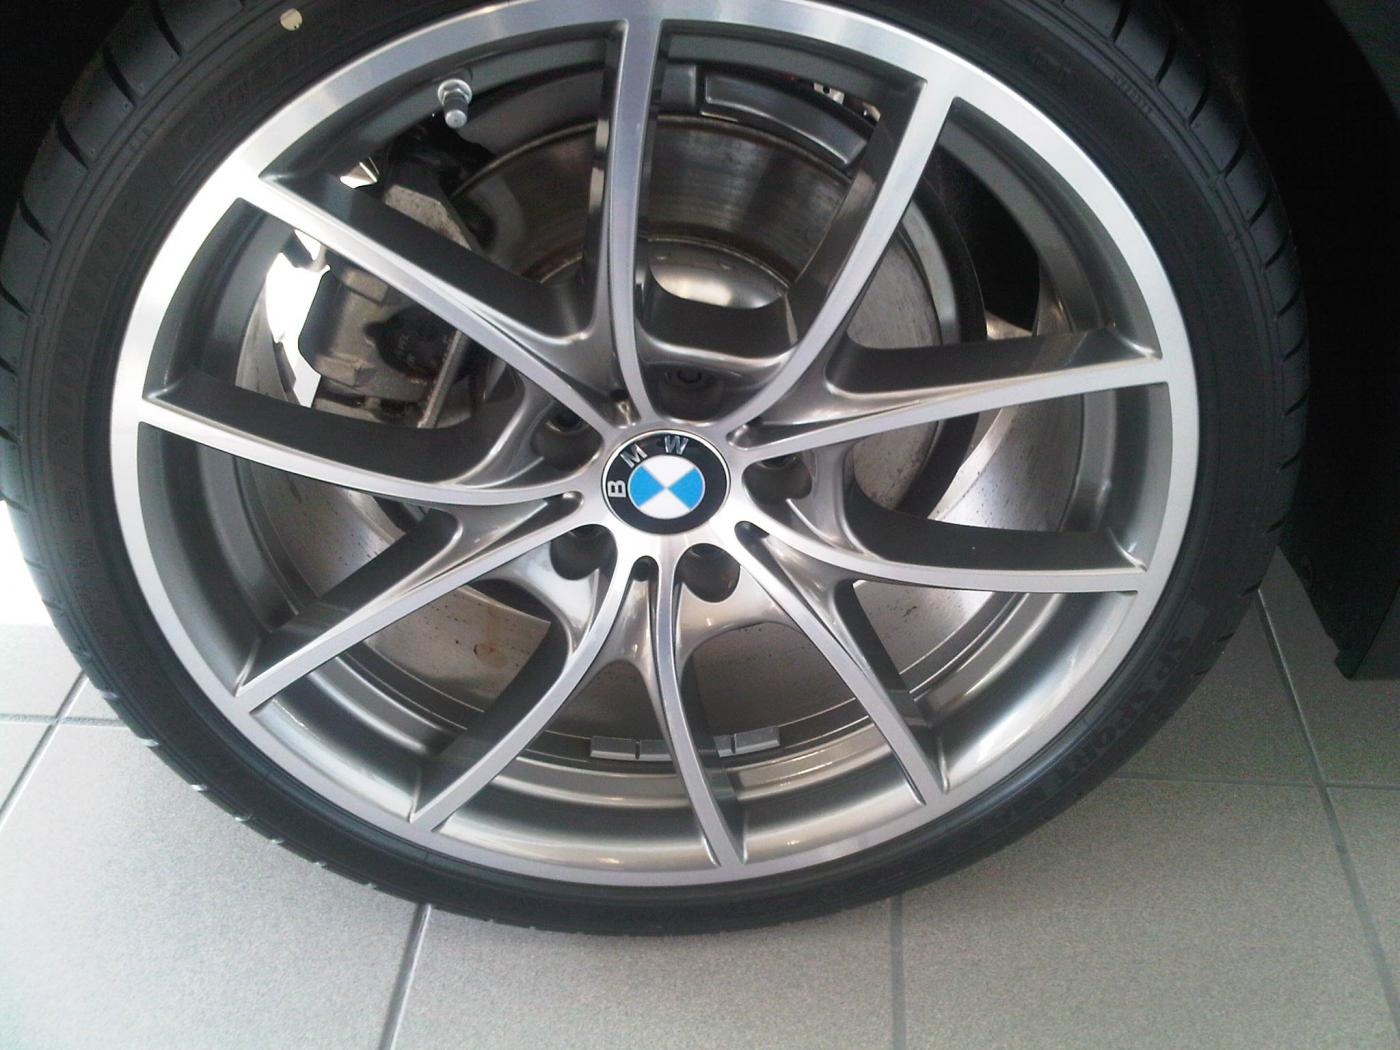 We offer the hassle free fitment to make things EASY